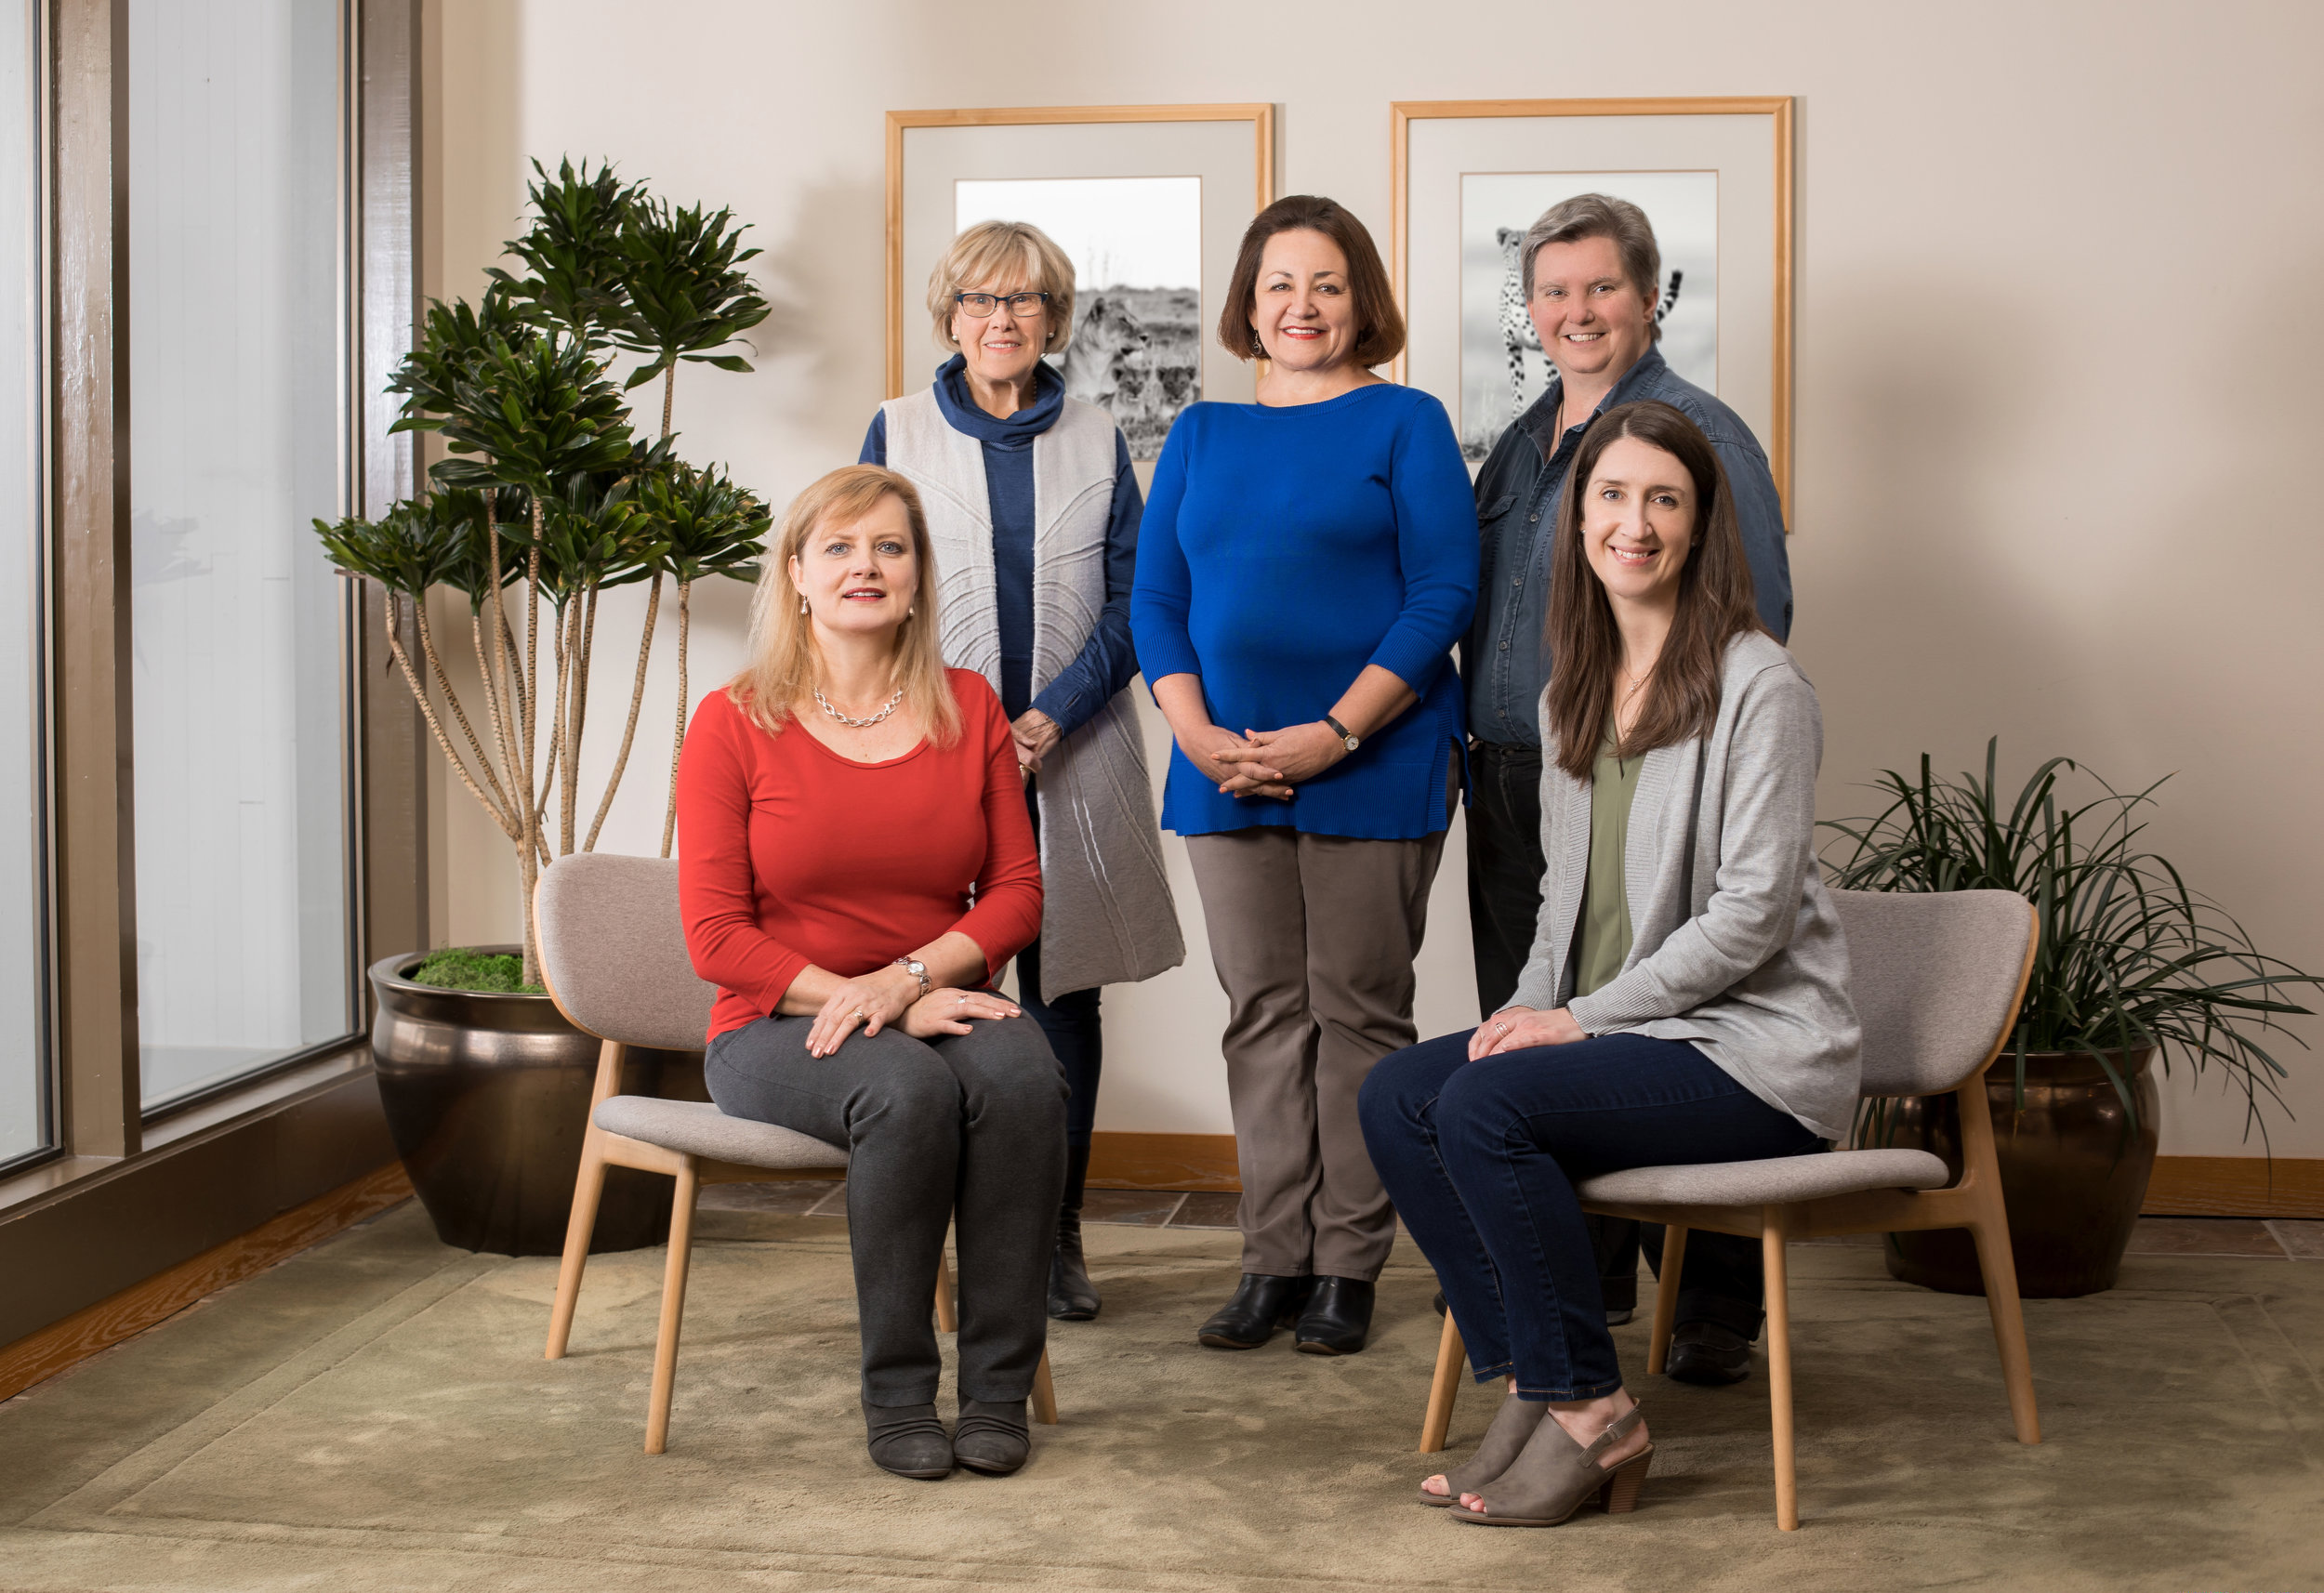 Team Everett marysville bellingham headshot outdoor natural light business linkedin